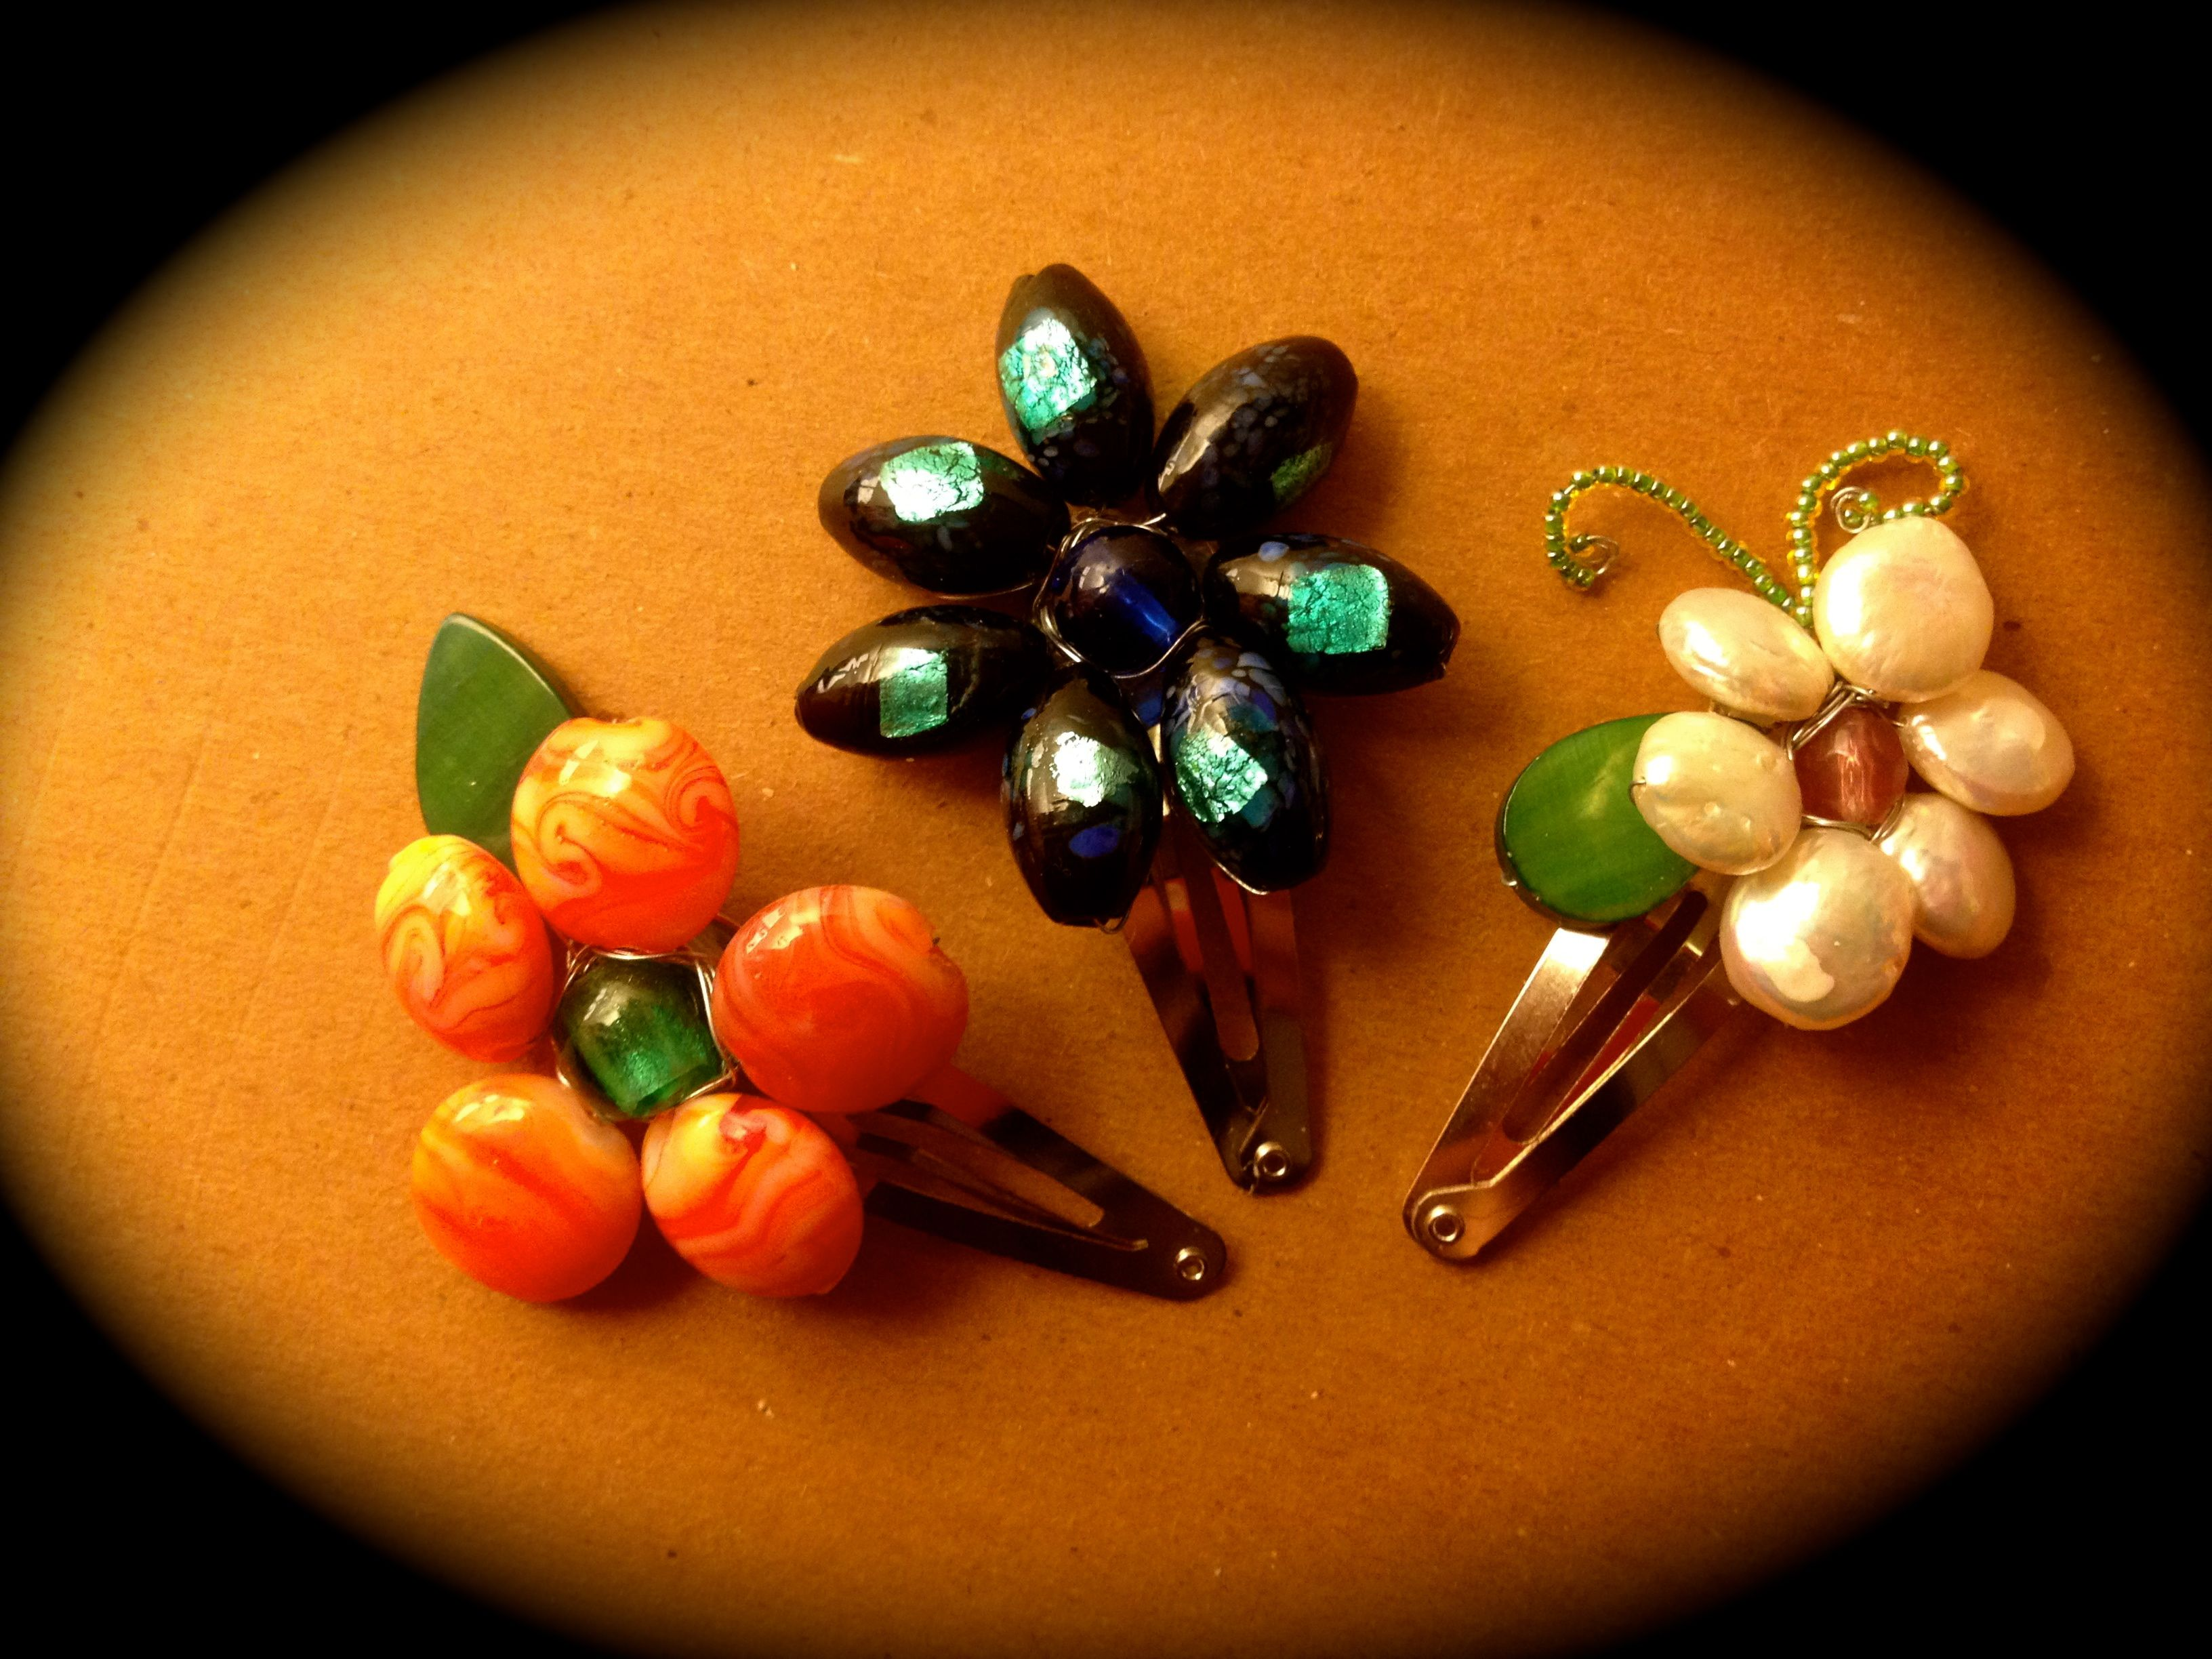 Beaded Hair Clips    All you need are:  1. Large size bead (Petals)  2. Small size beads (center)  3. Fine wire (color of your choice, 26 guage wire)   4. Snap hair clips  5. Hot glue gun/glue sticks   6. Scissors   7. Flat head pliers (optional, great for pulling the wire through the center bead)     How to make them:    Start with one 18-24 inch 26 gauge wire, depending on the size of the beads.    Thread the single wire through the center bead hole (the hole must be large enough to enable…